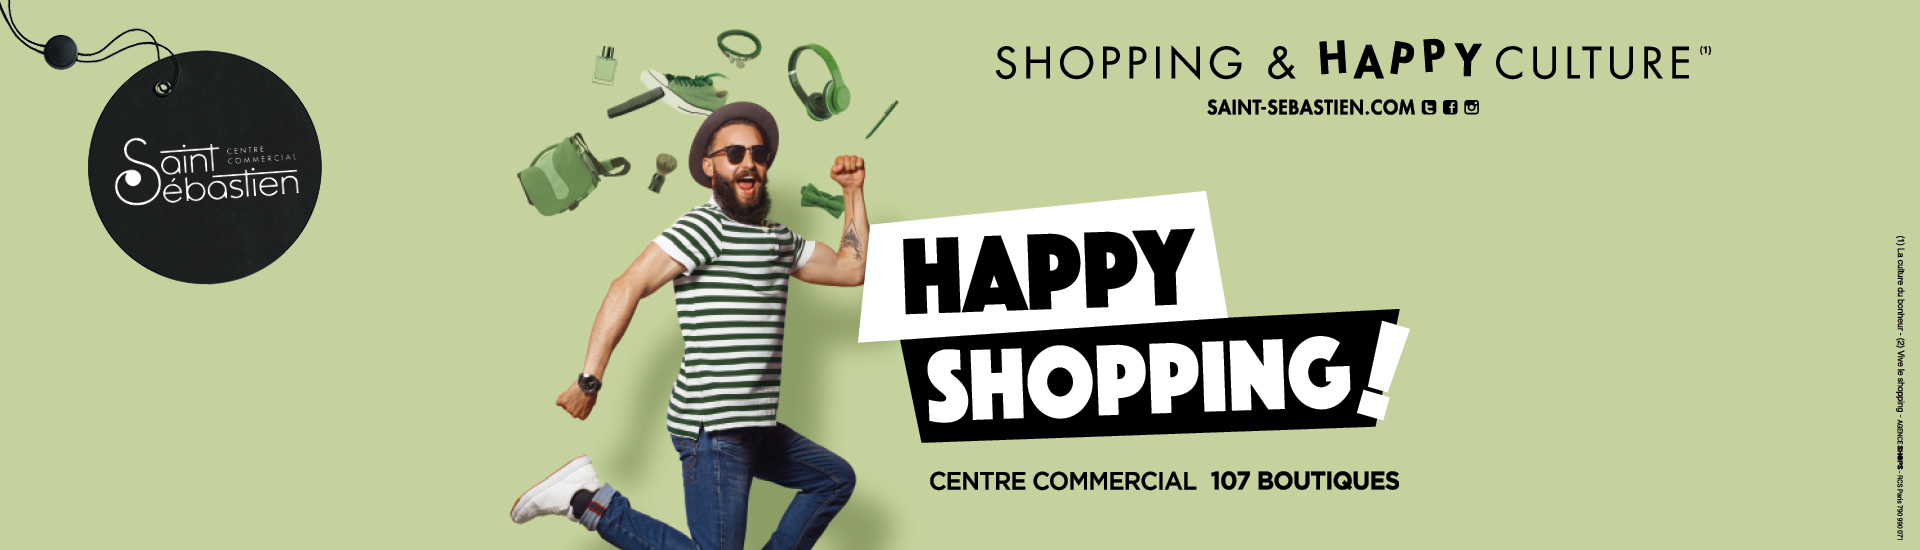 Happy Shopping au Saint Sébastien Nancy